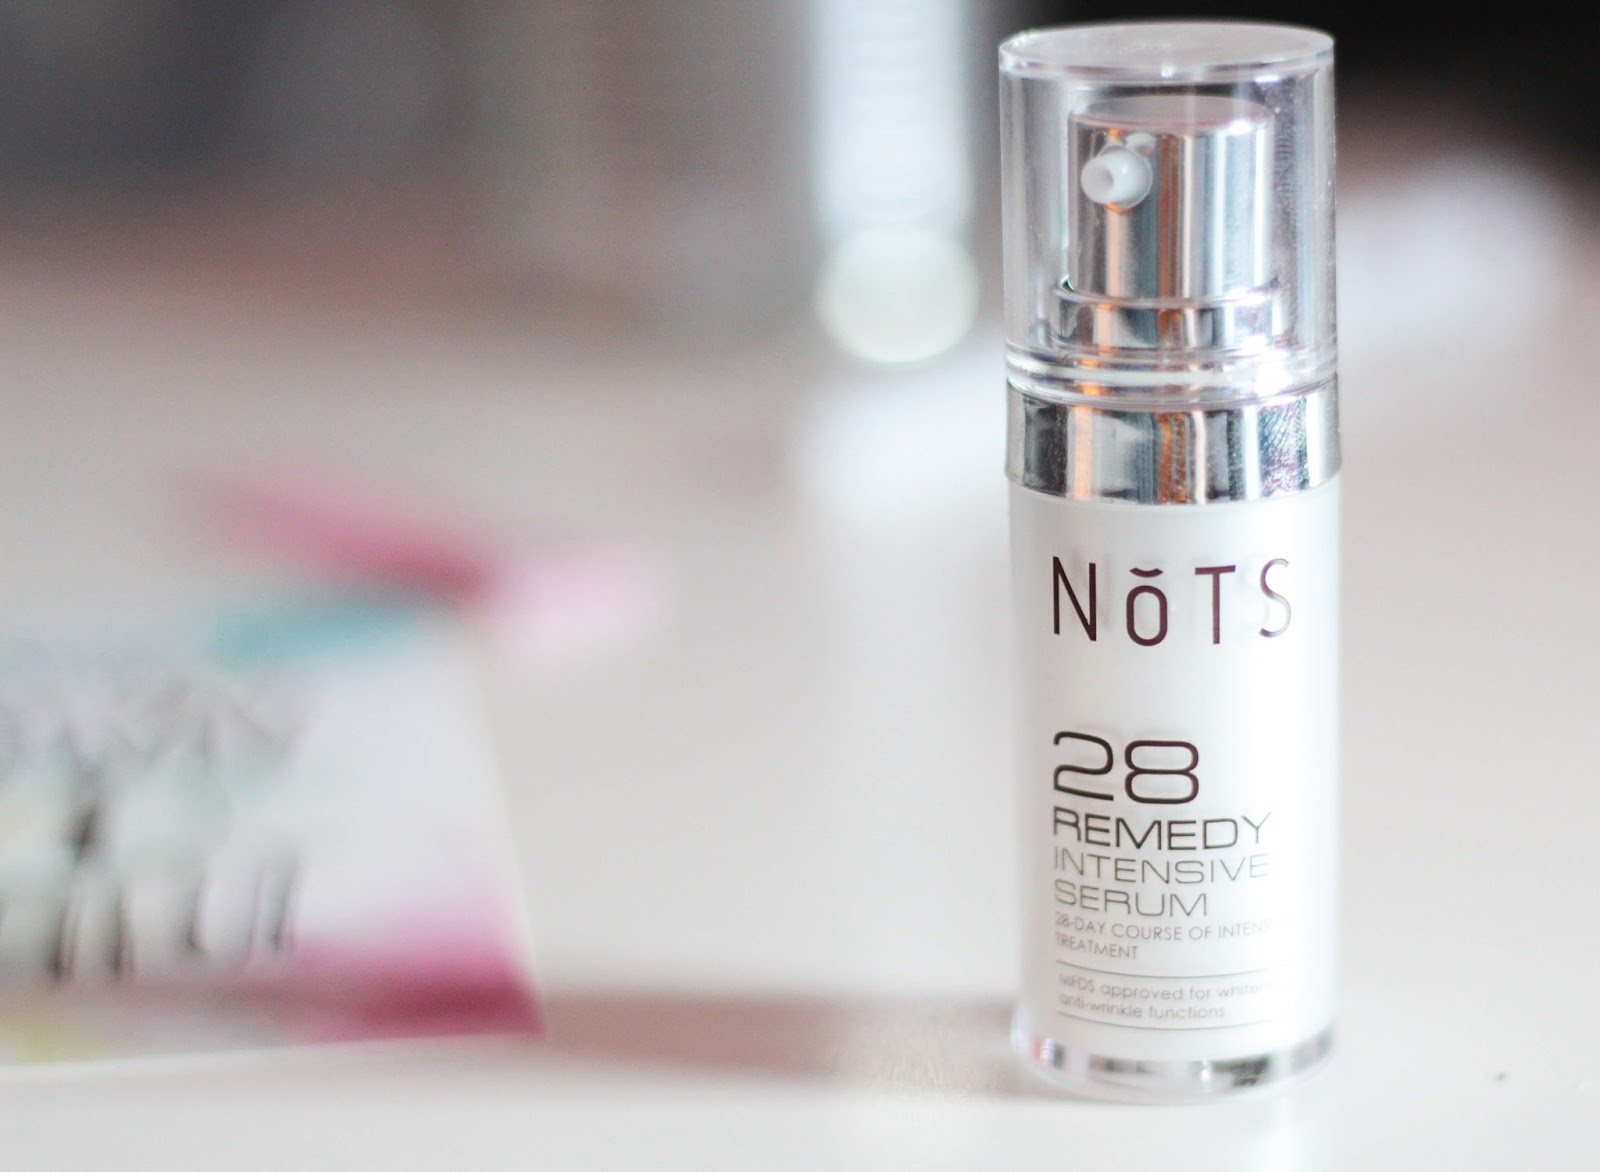 NoTS 28 Remedy intensive serum review